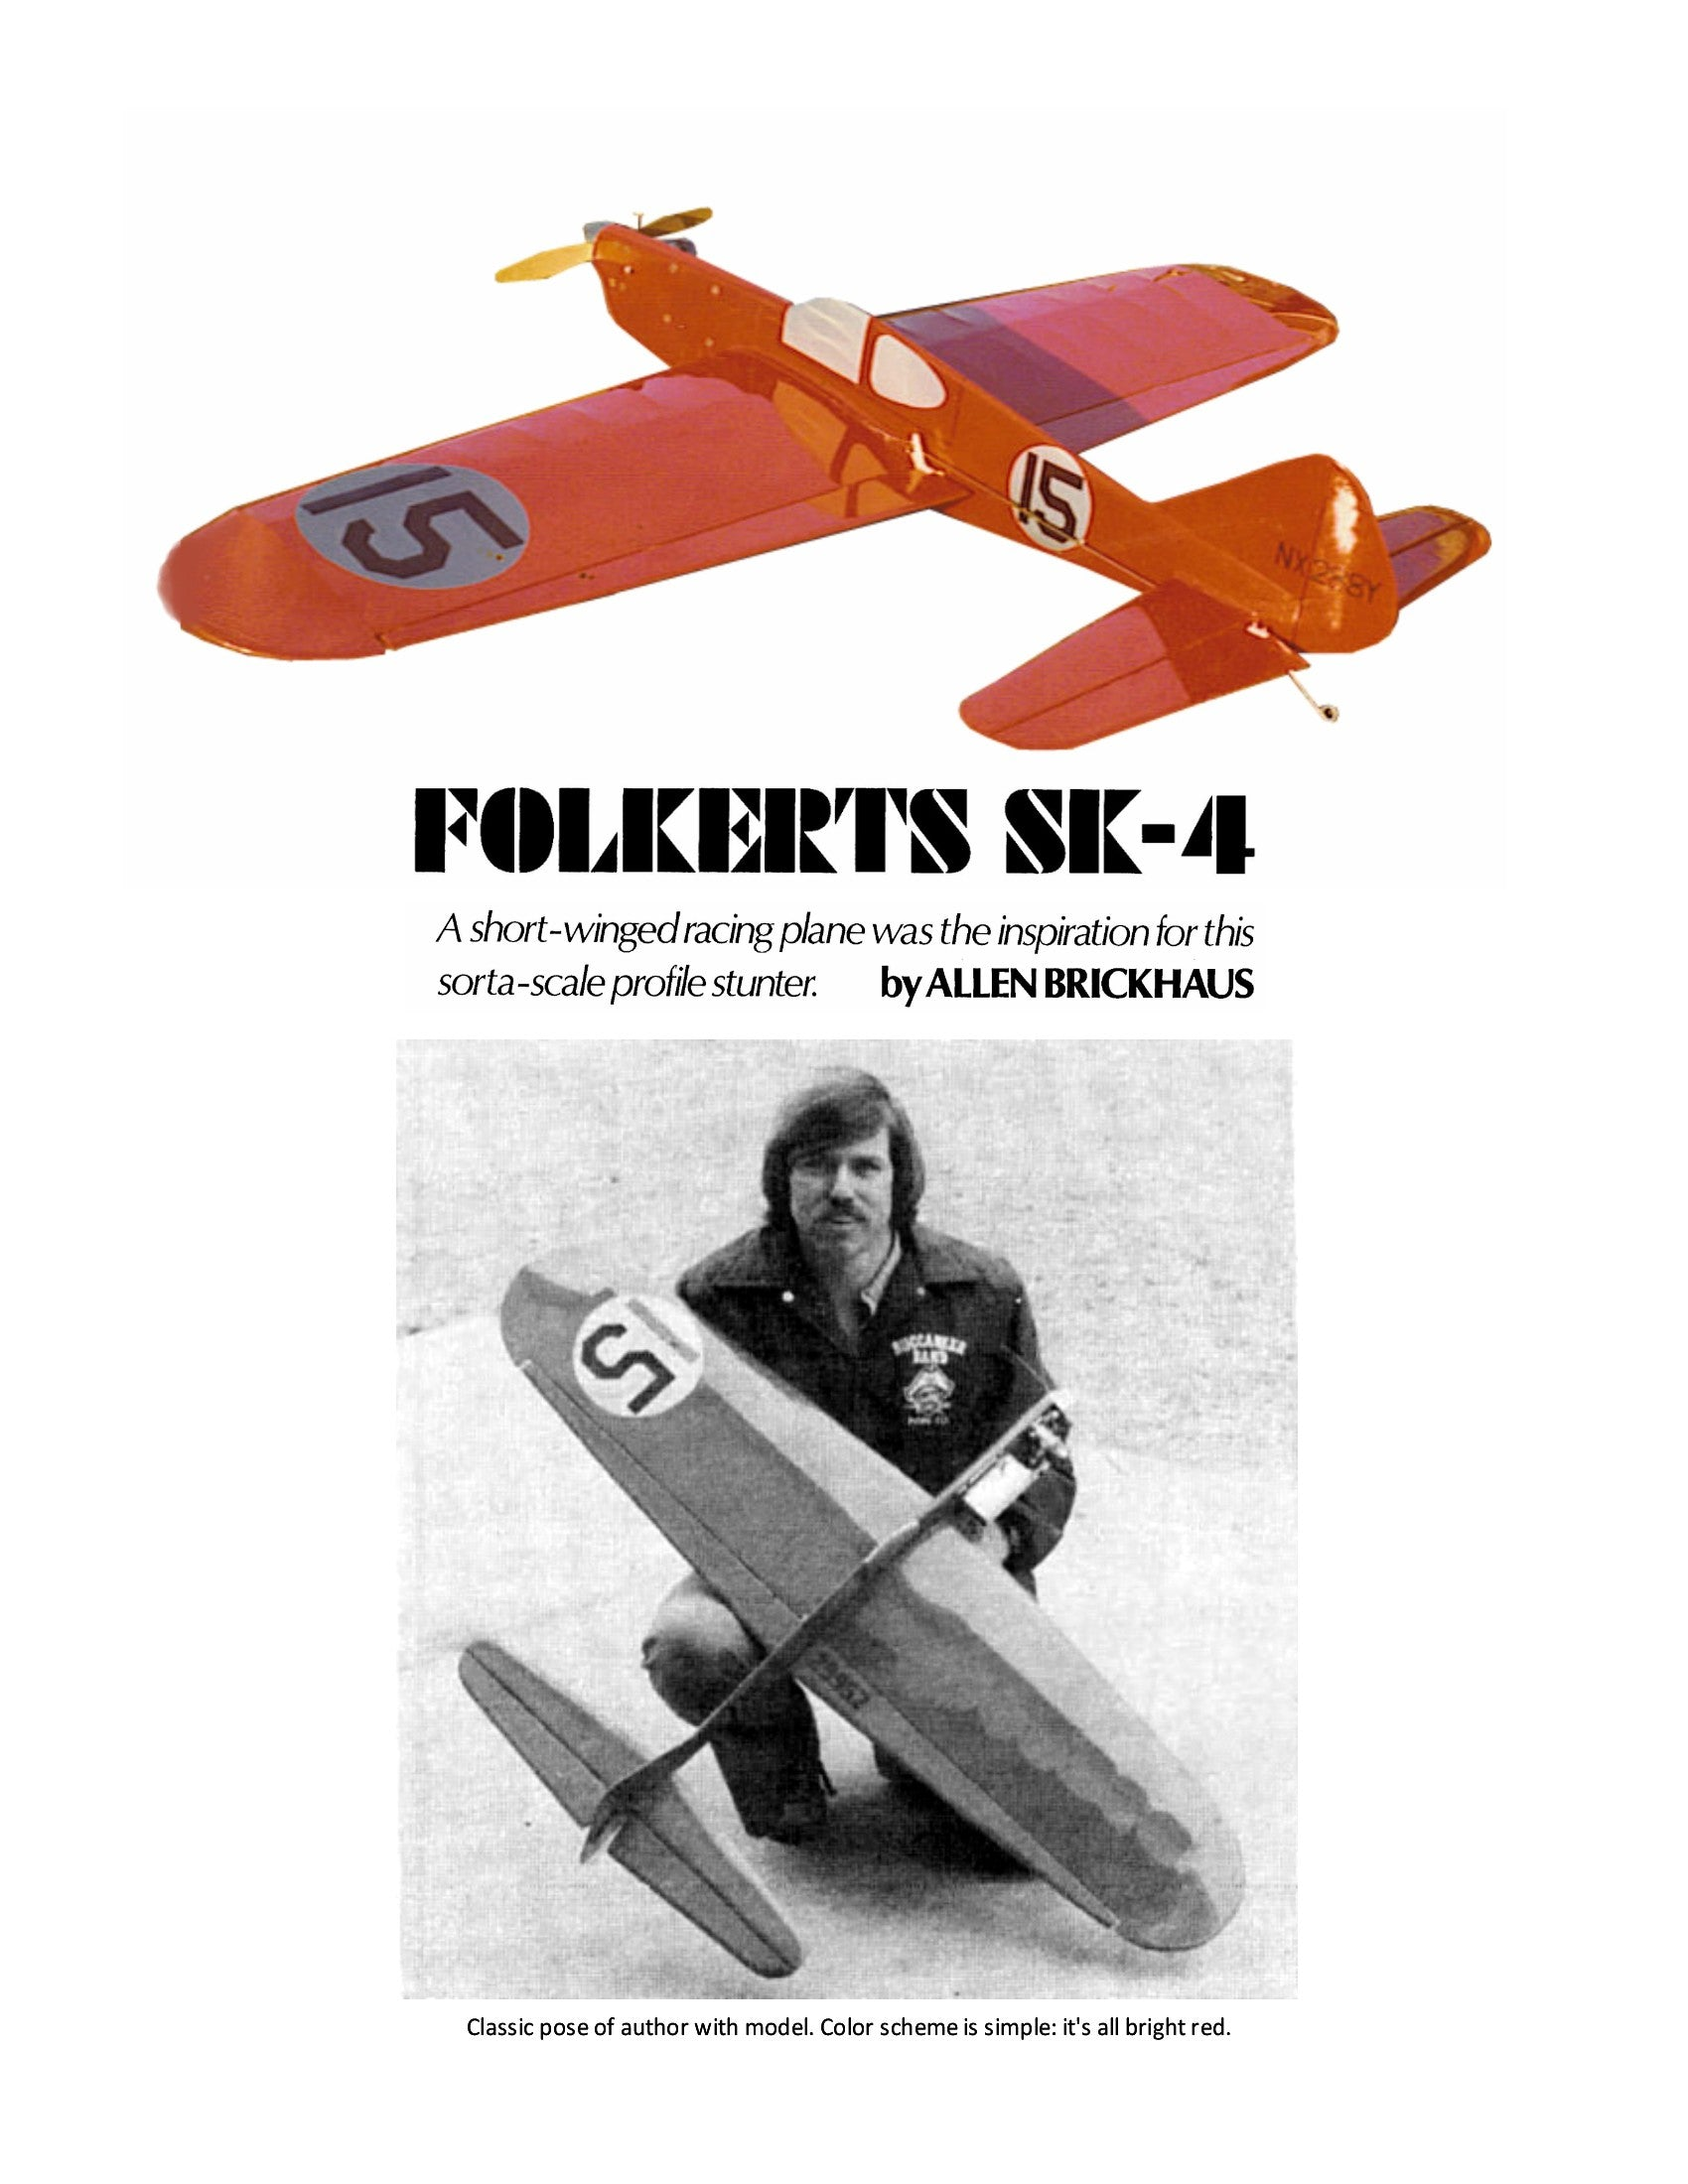 Full Size Plans 1979 Vintage sorta-scale profile stunter. FOLKERTS SK-4  pattern with no problem